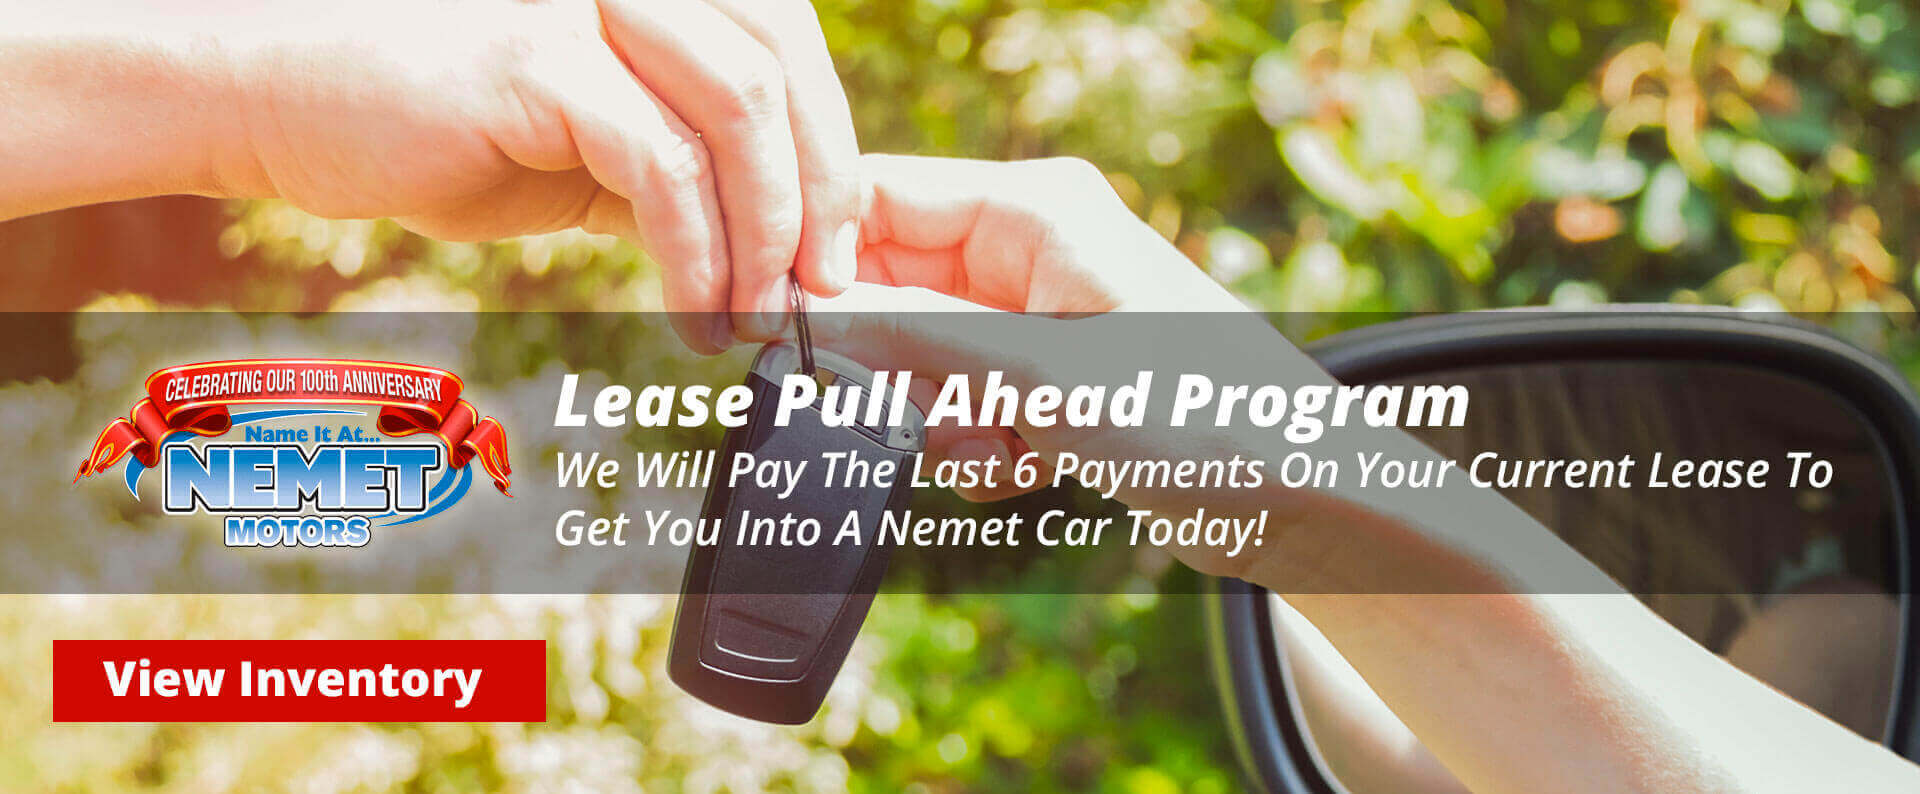 Lease Pull Ahead Program